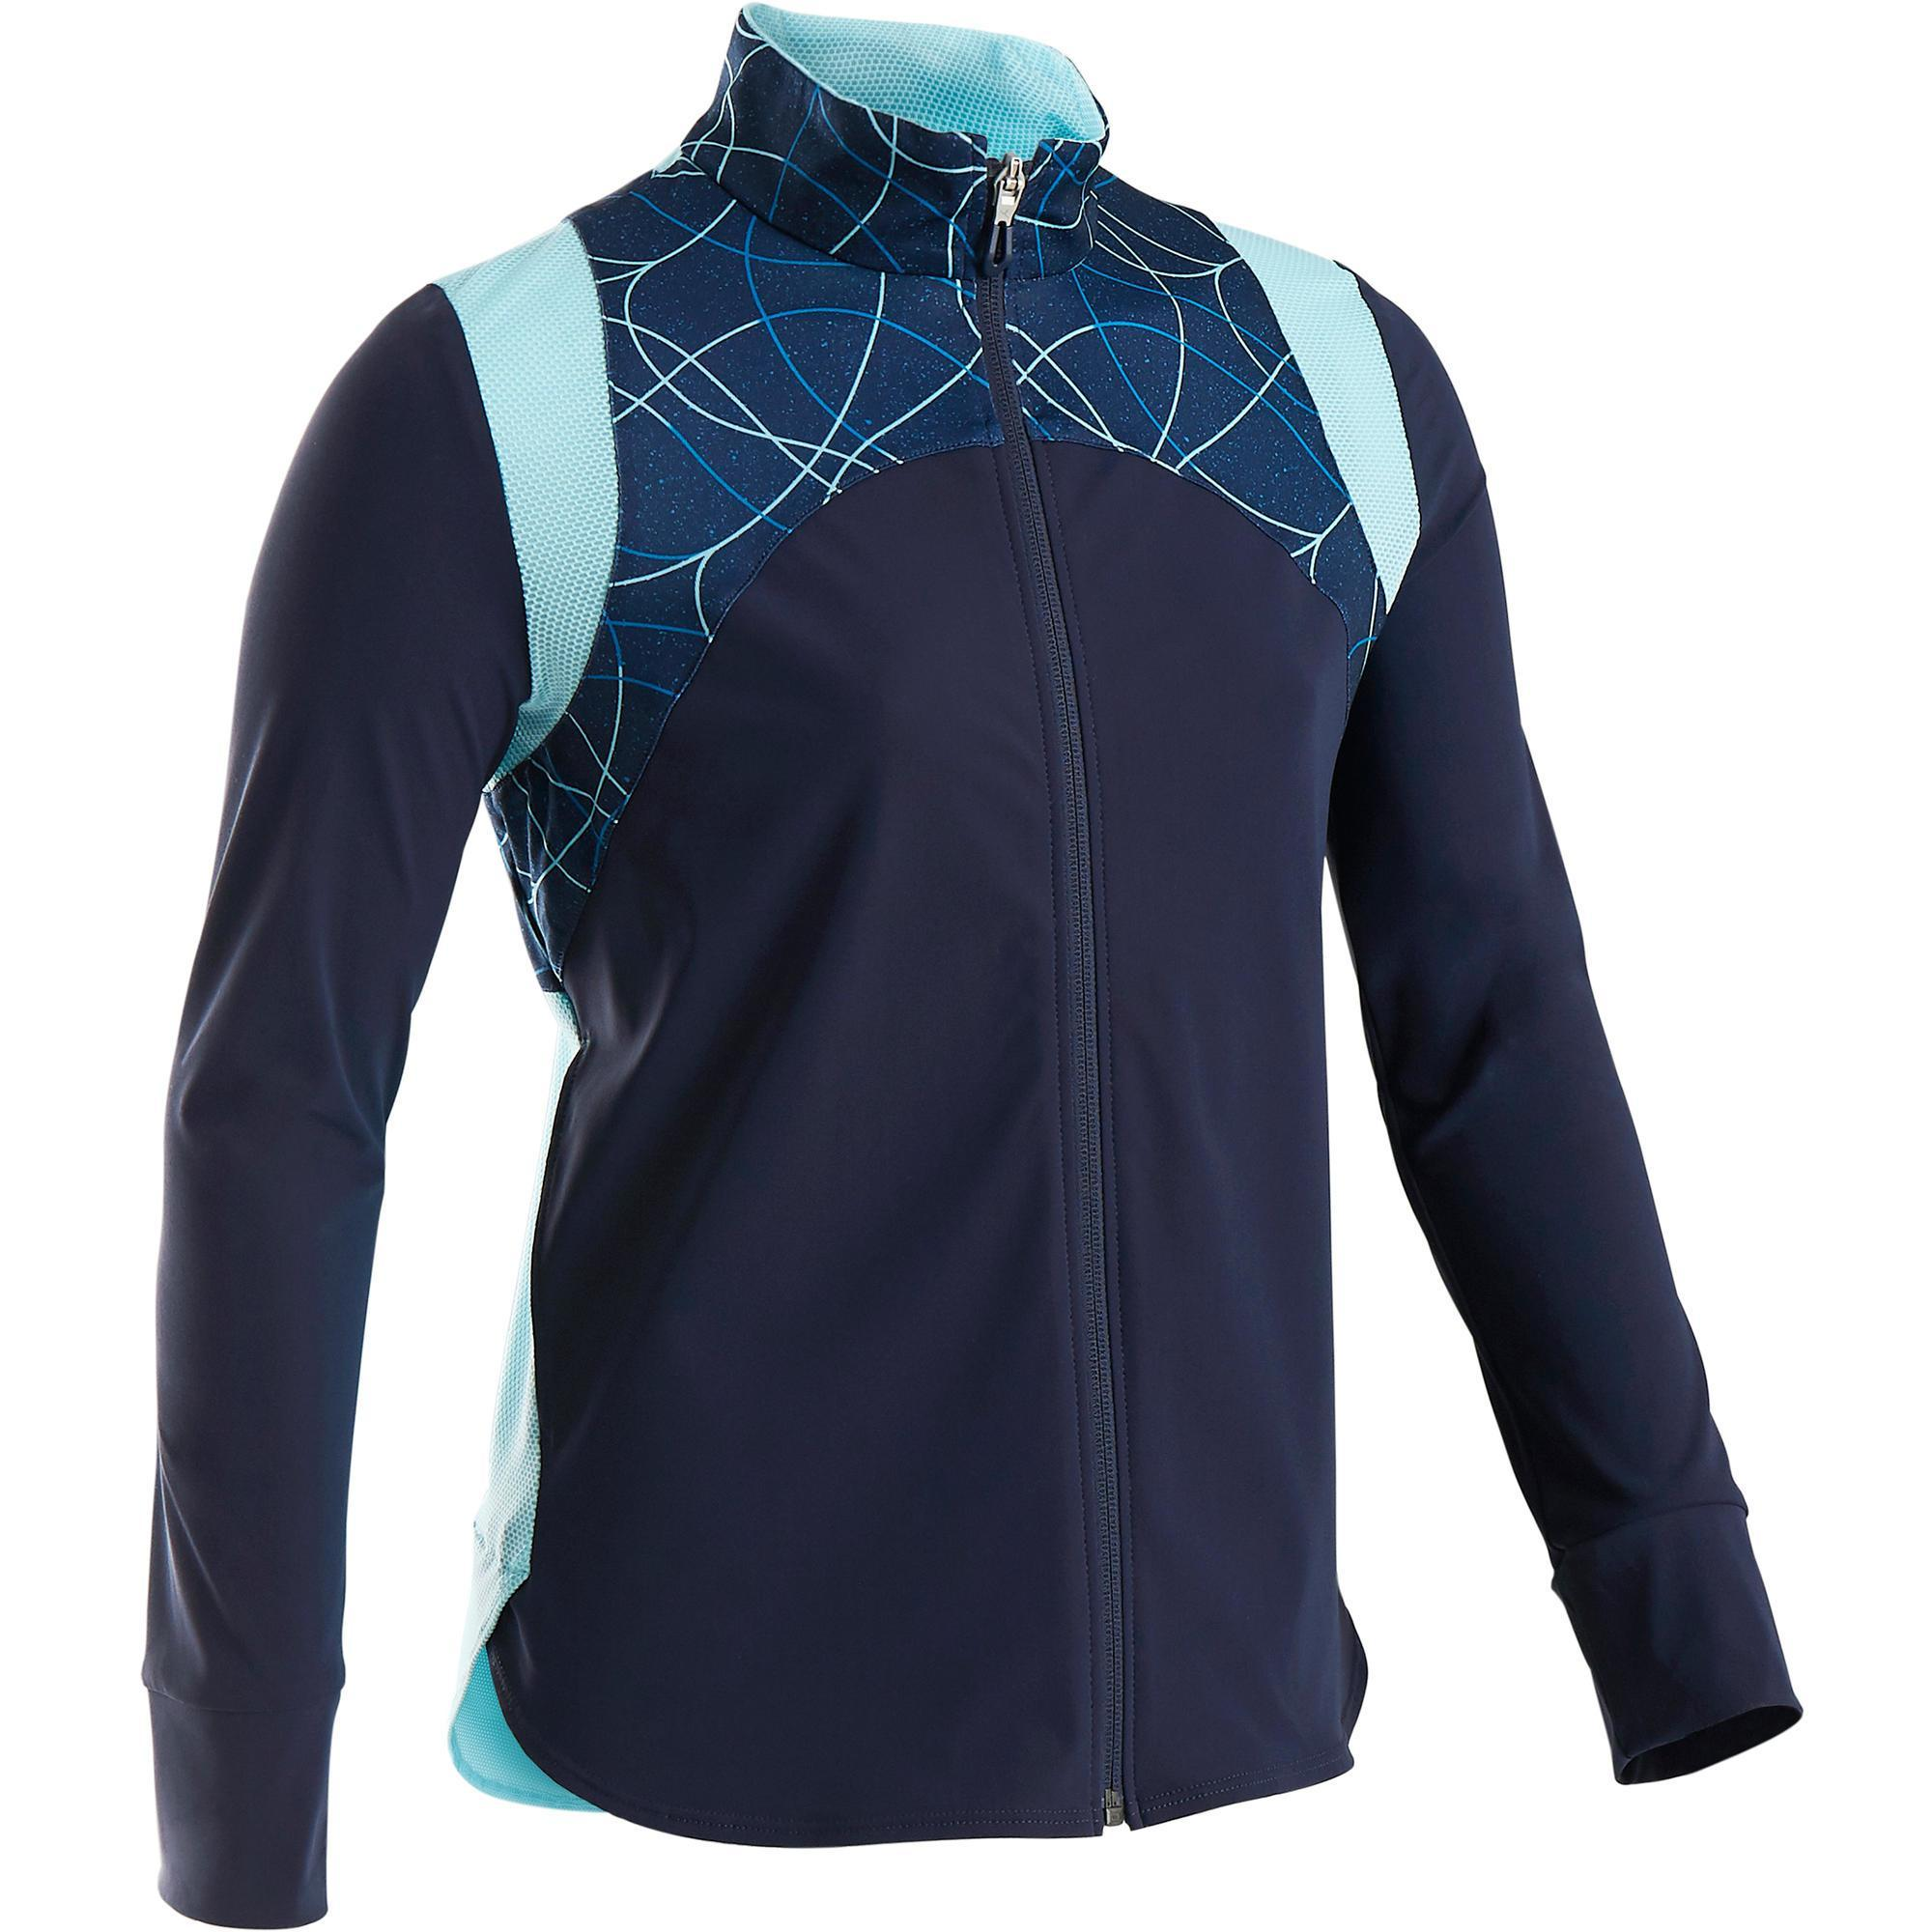 Trainingsjacke Light atmungsaktiv S900 Gym Kinder blau